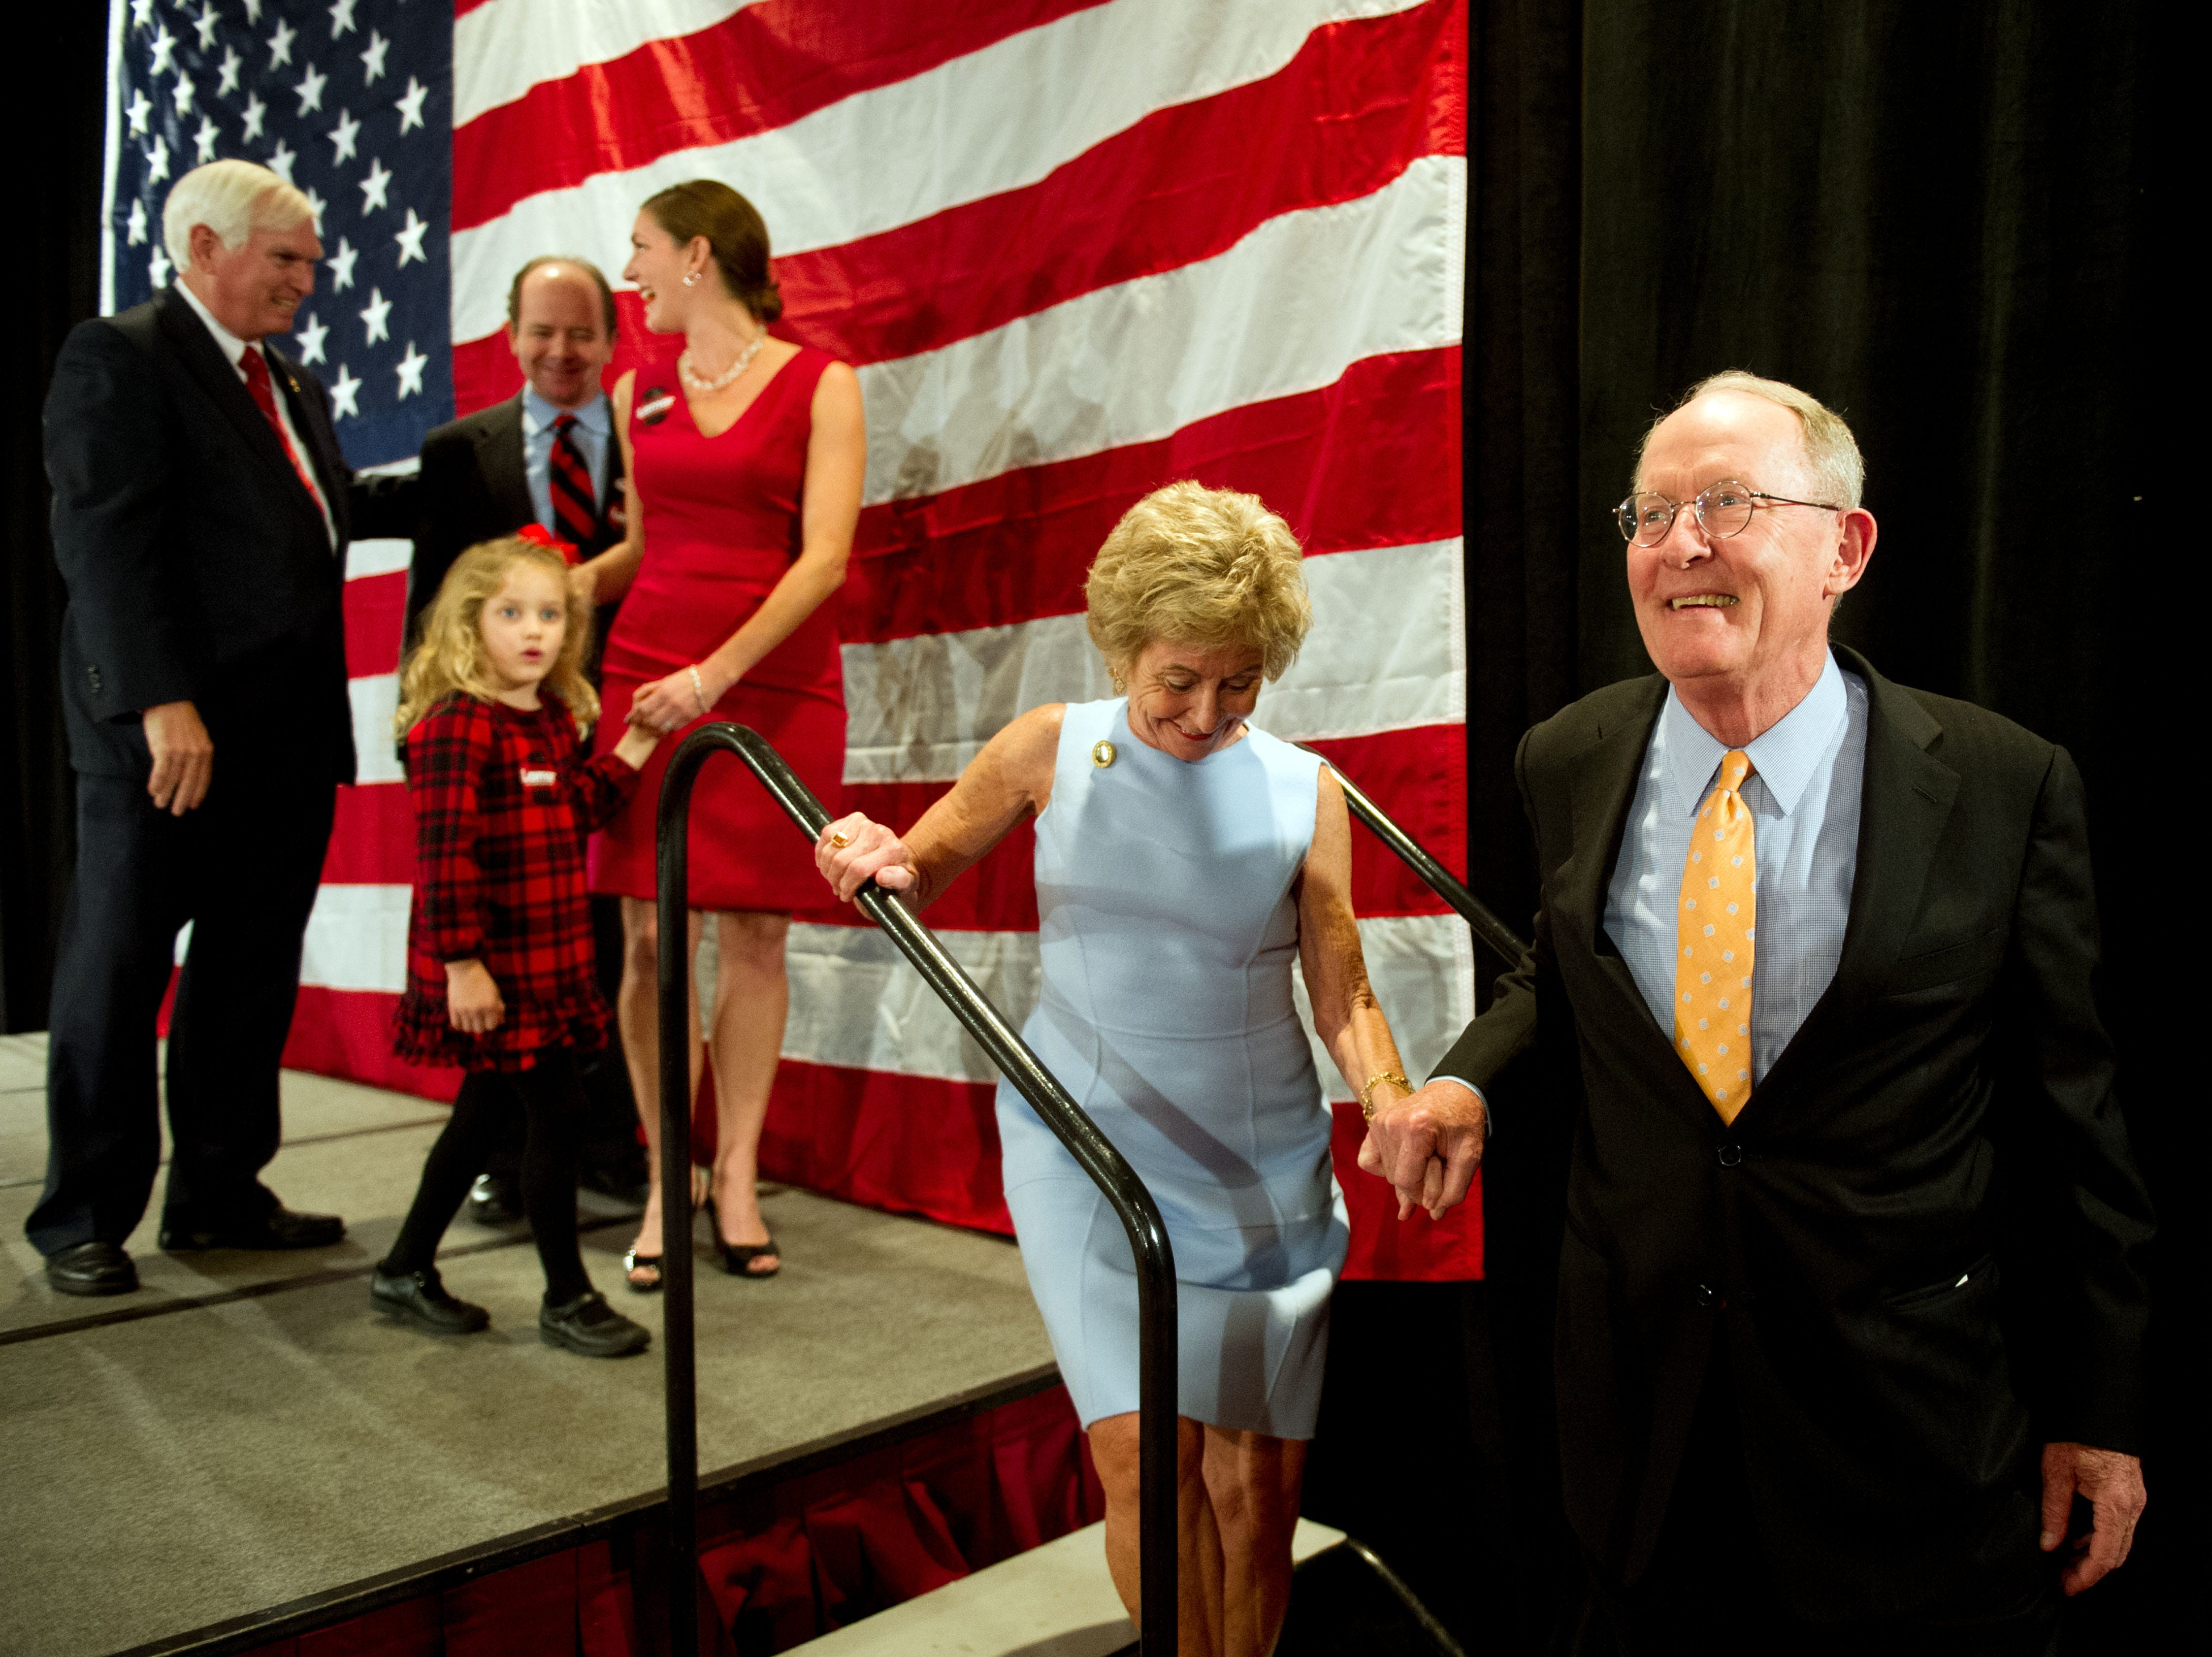 Senator Lamar Alexander smiles into the crowd after thanking his supporters at the Crowne Plaza on Tuesday, November 4, 2014. With him is his wife Honey Alexander.